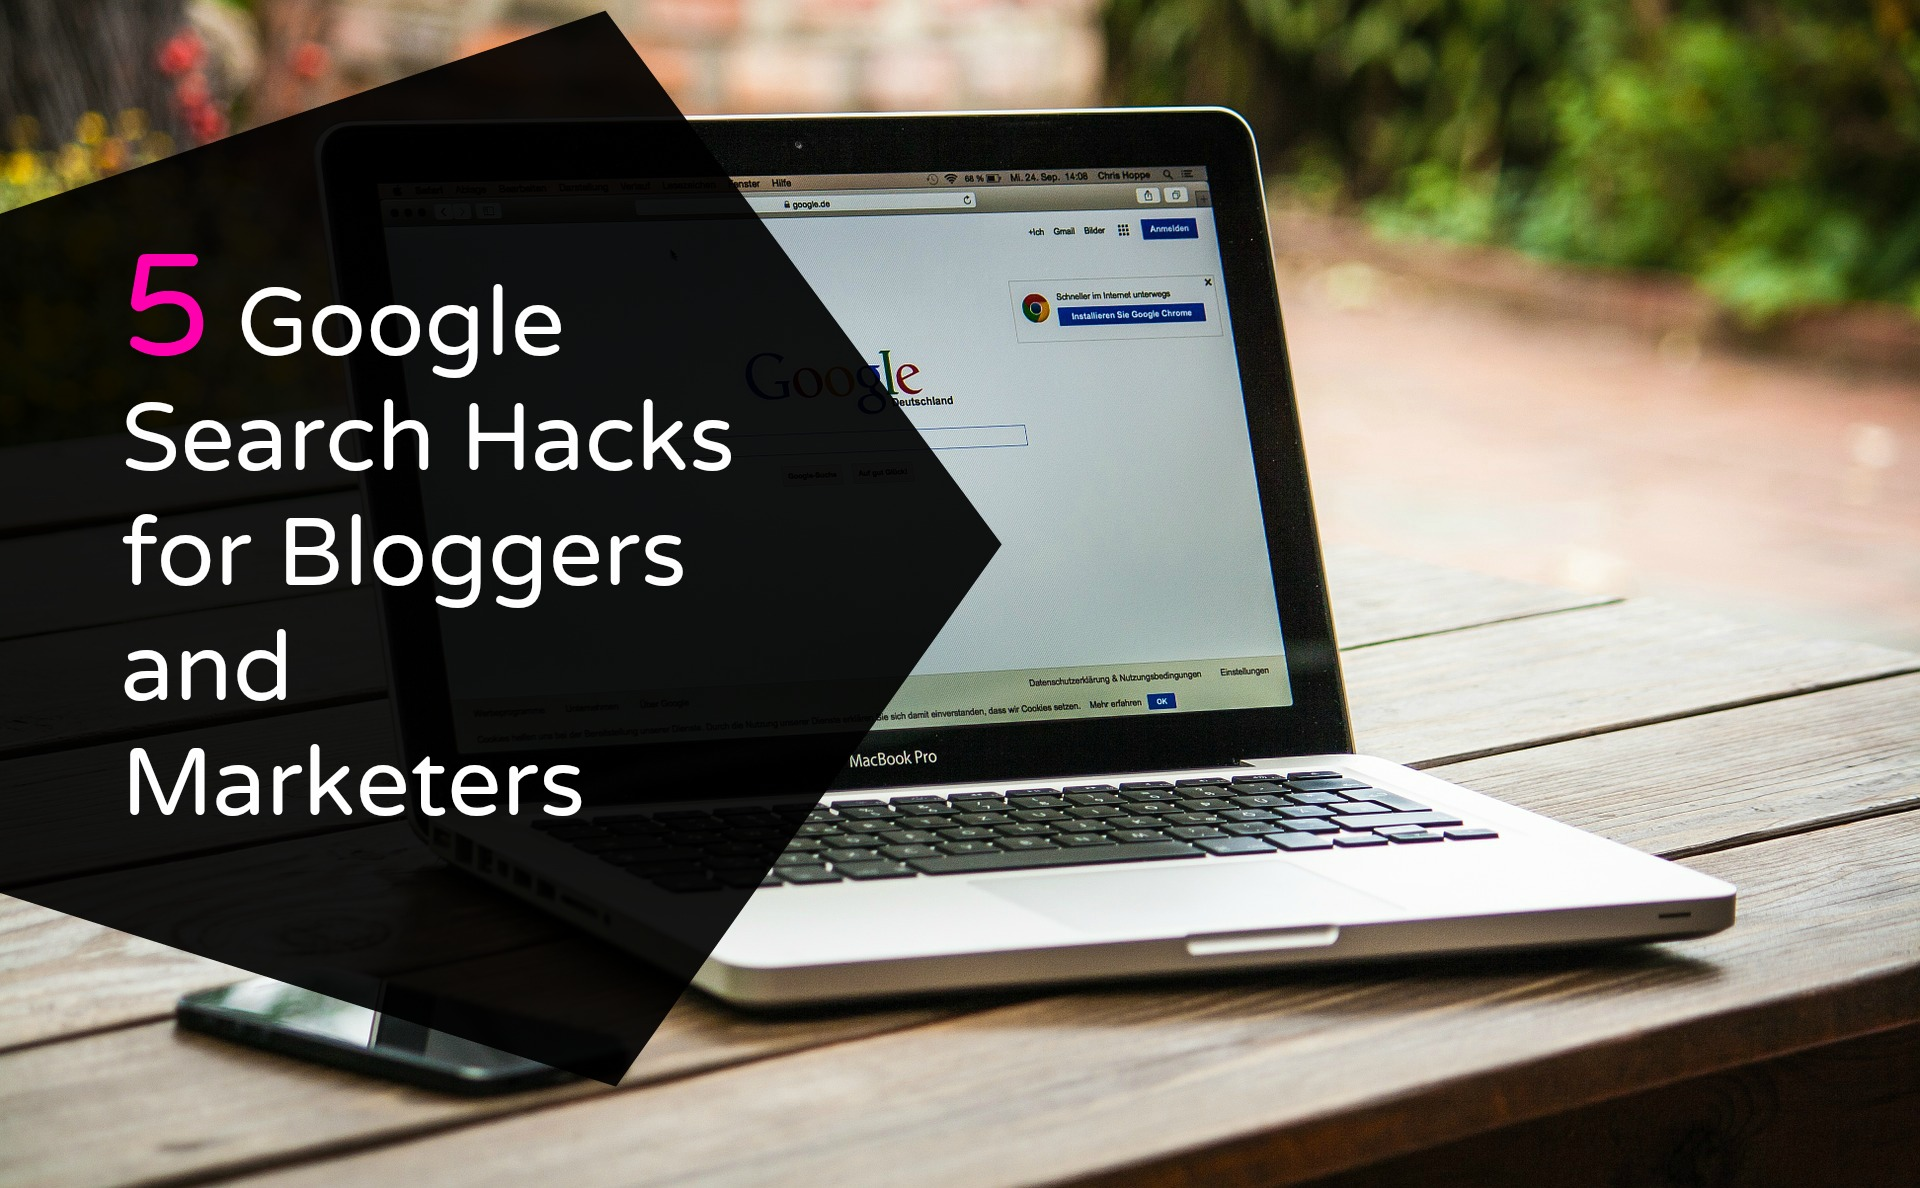 Google search hacks for bloggers